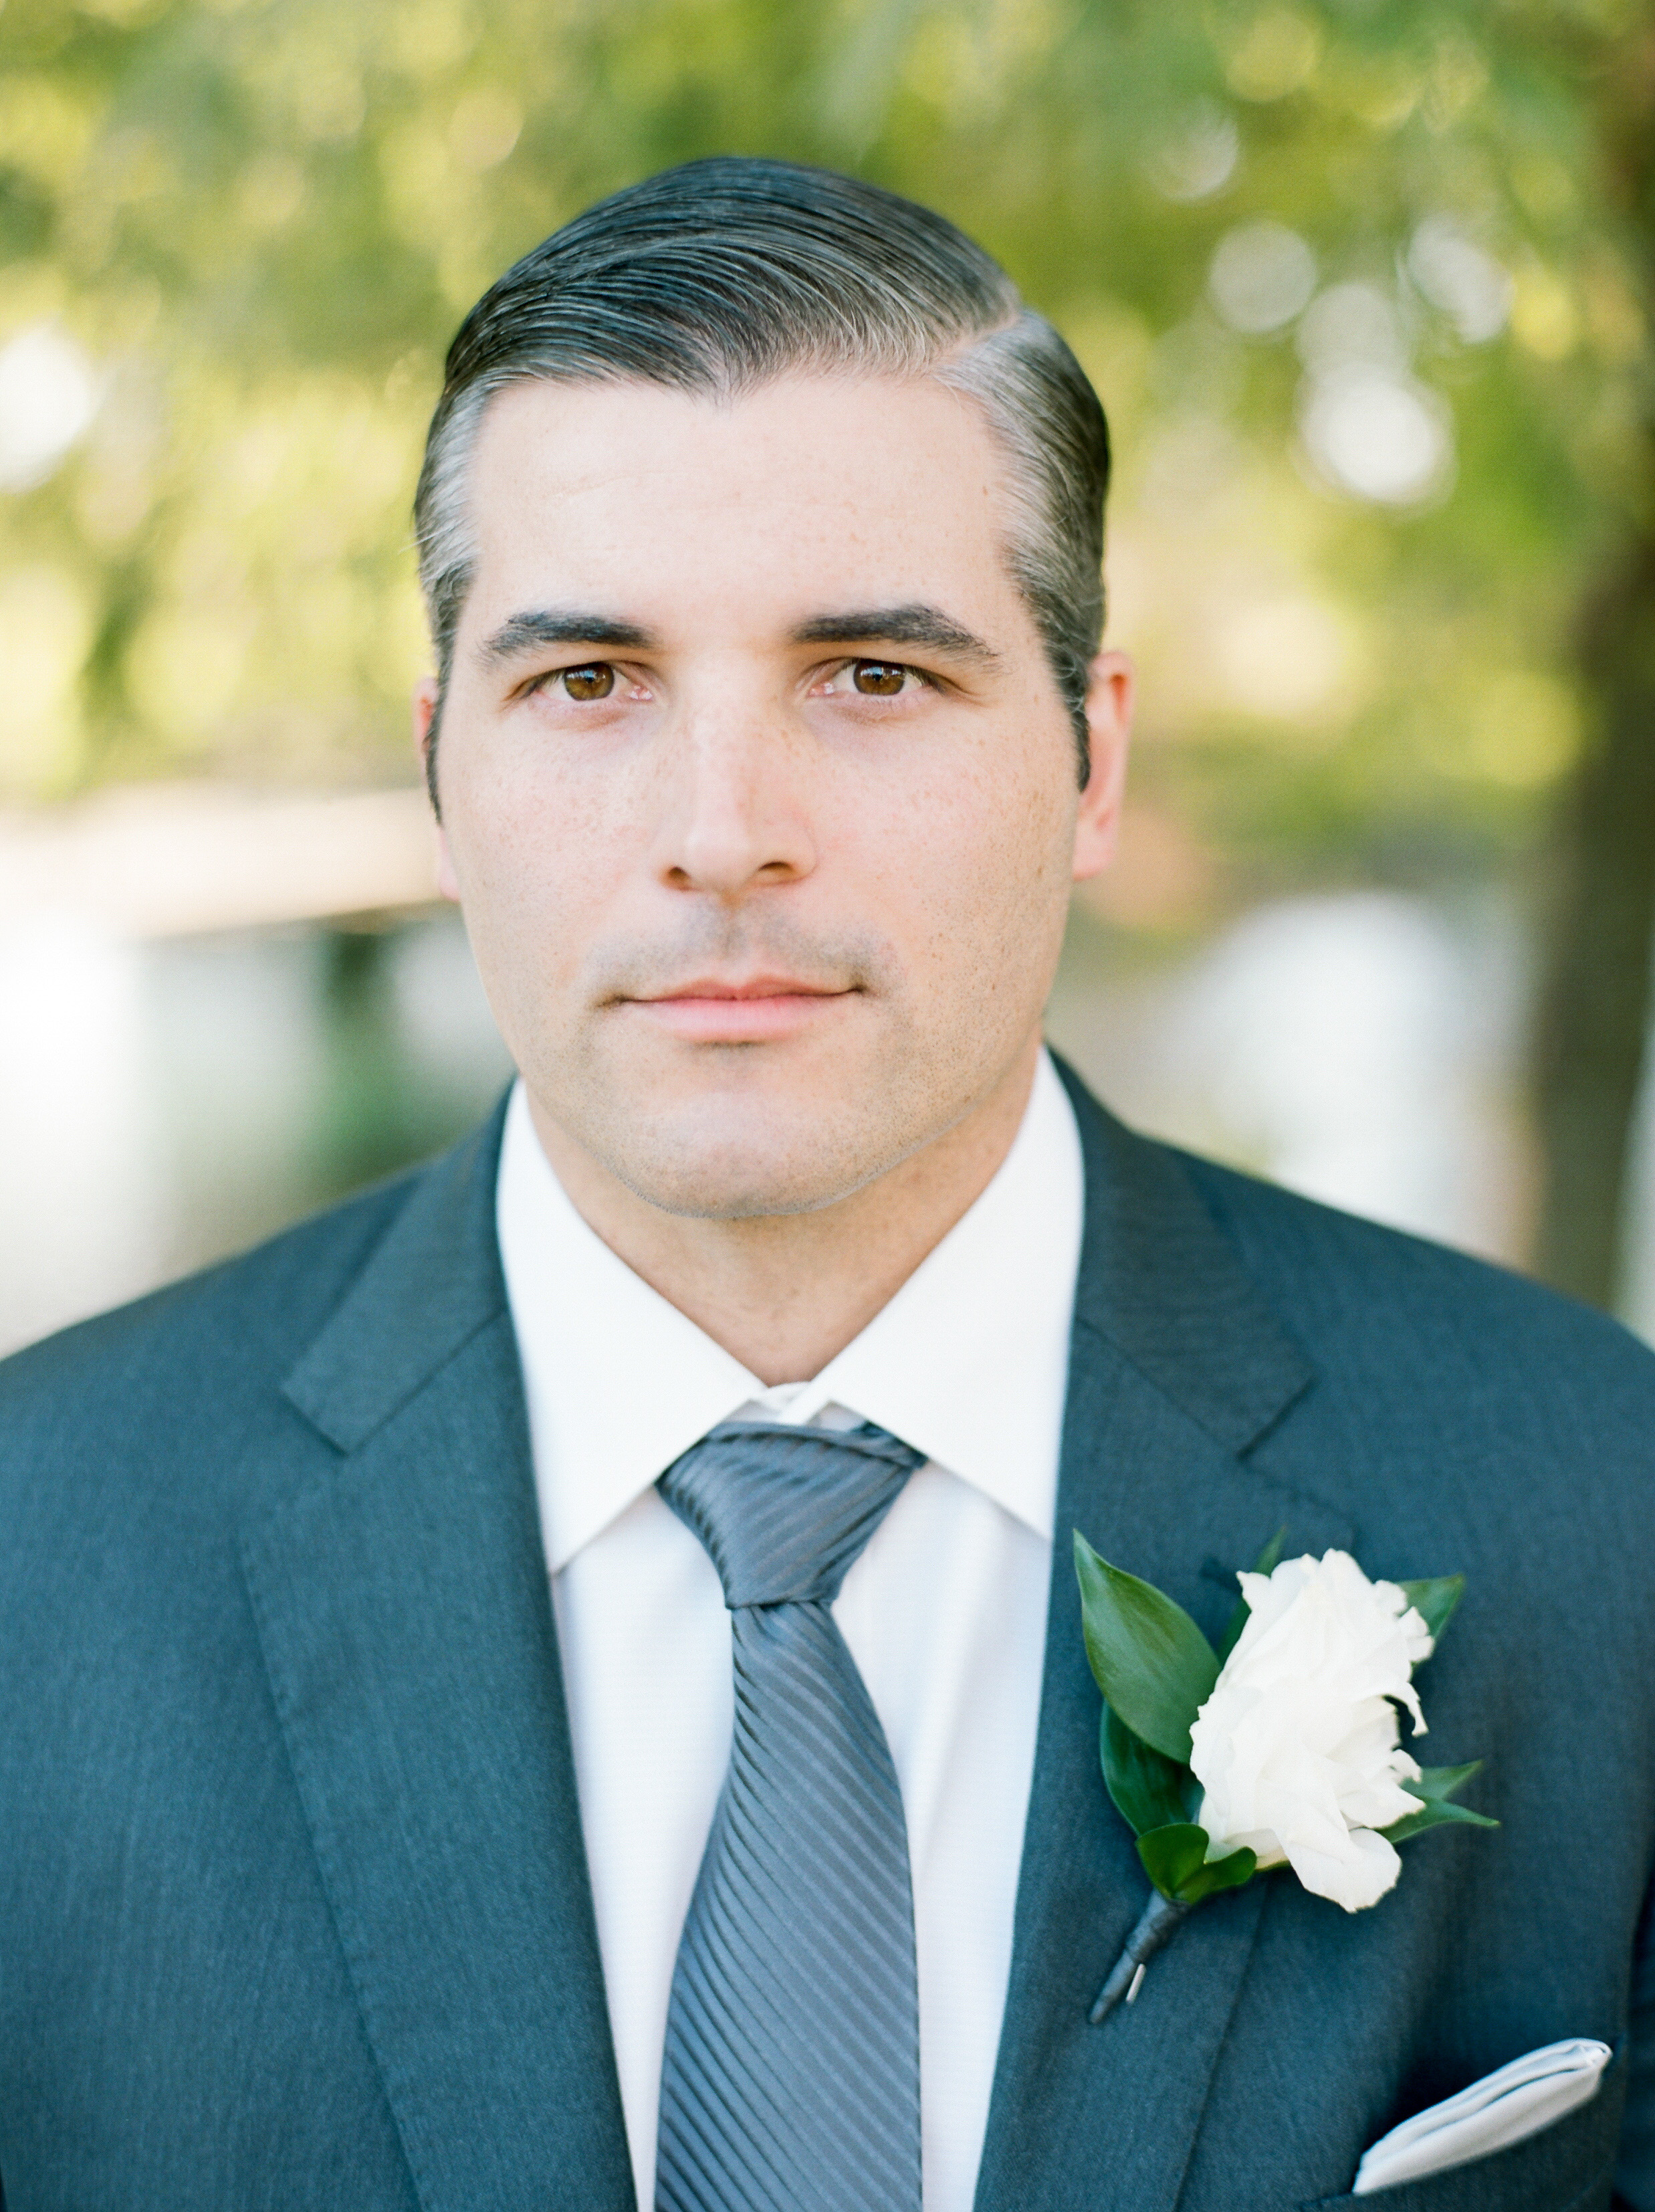 Houston-Wedding-Photographer-Lakeside-Country-Club-First-Look-Bride-Groom-Formals-Film-Fine-Art-Photography-16.jpg